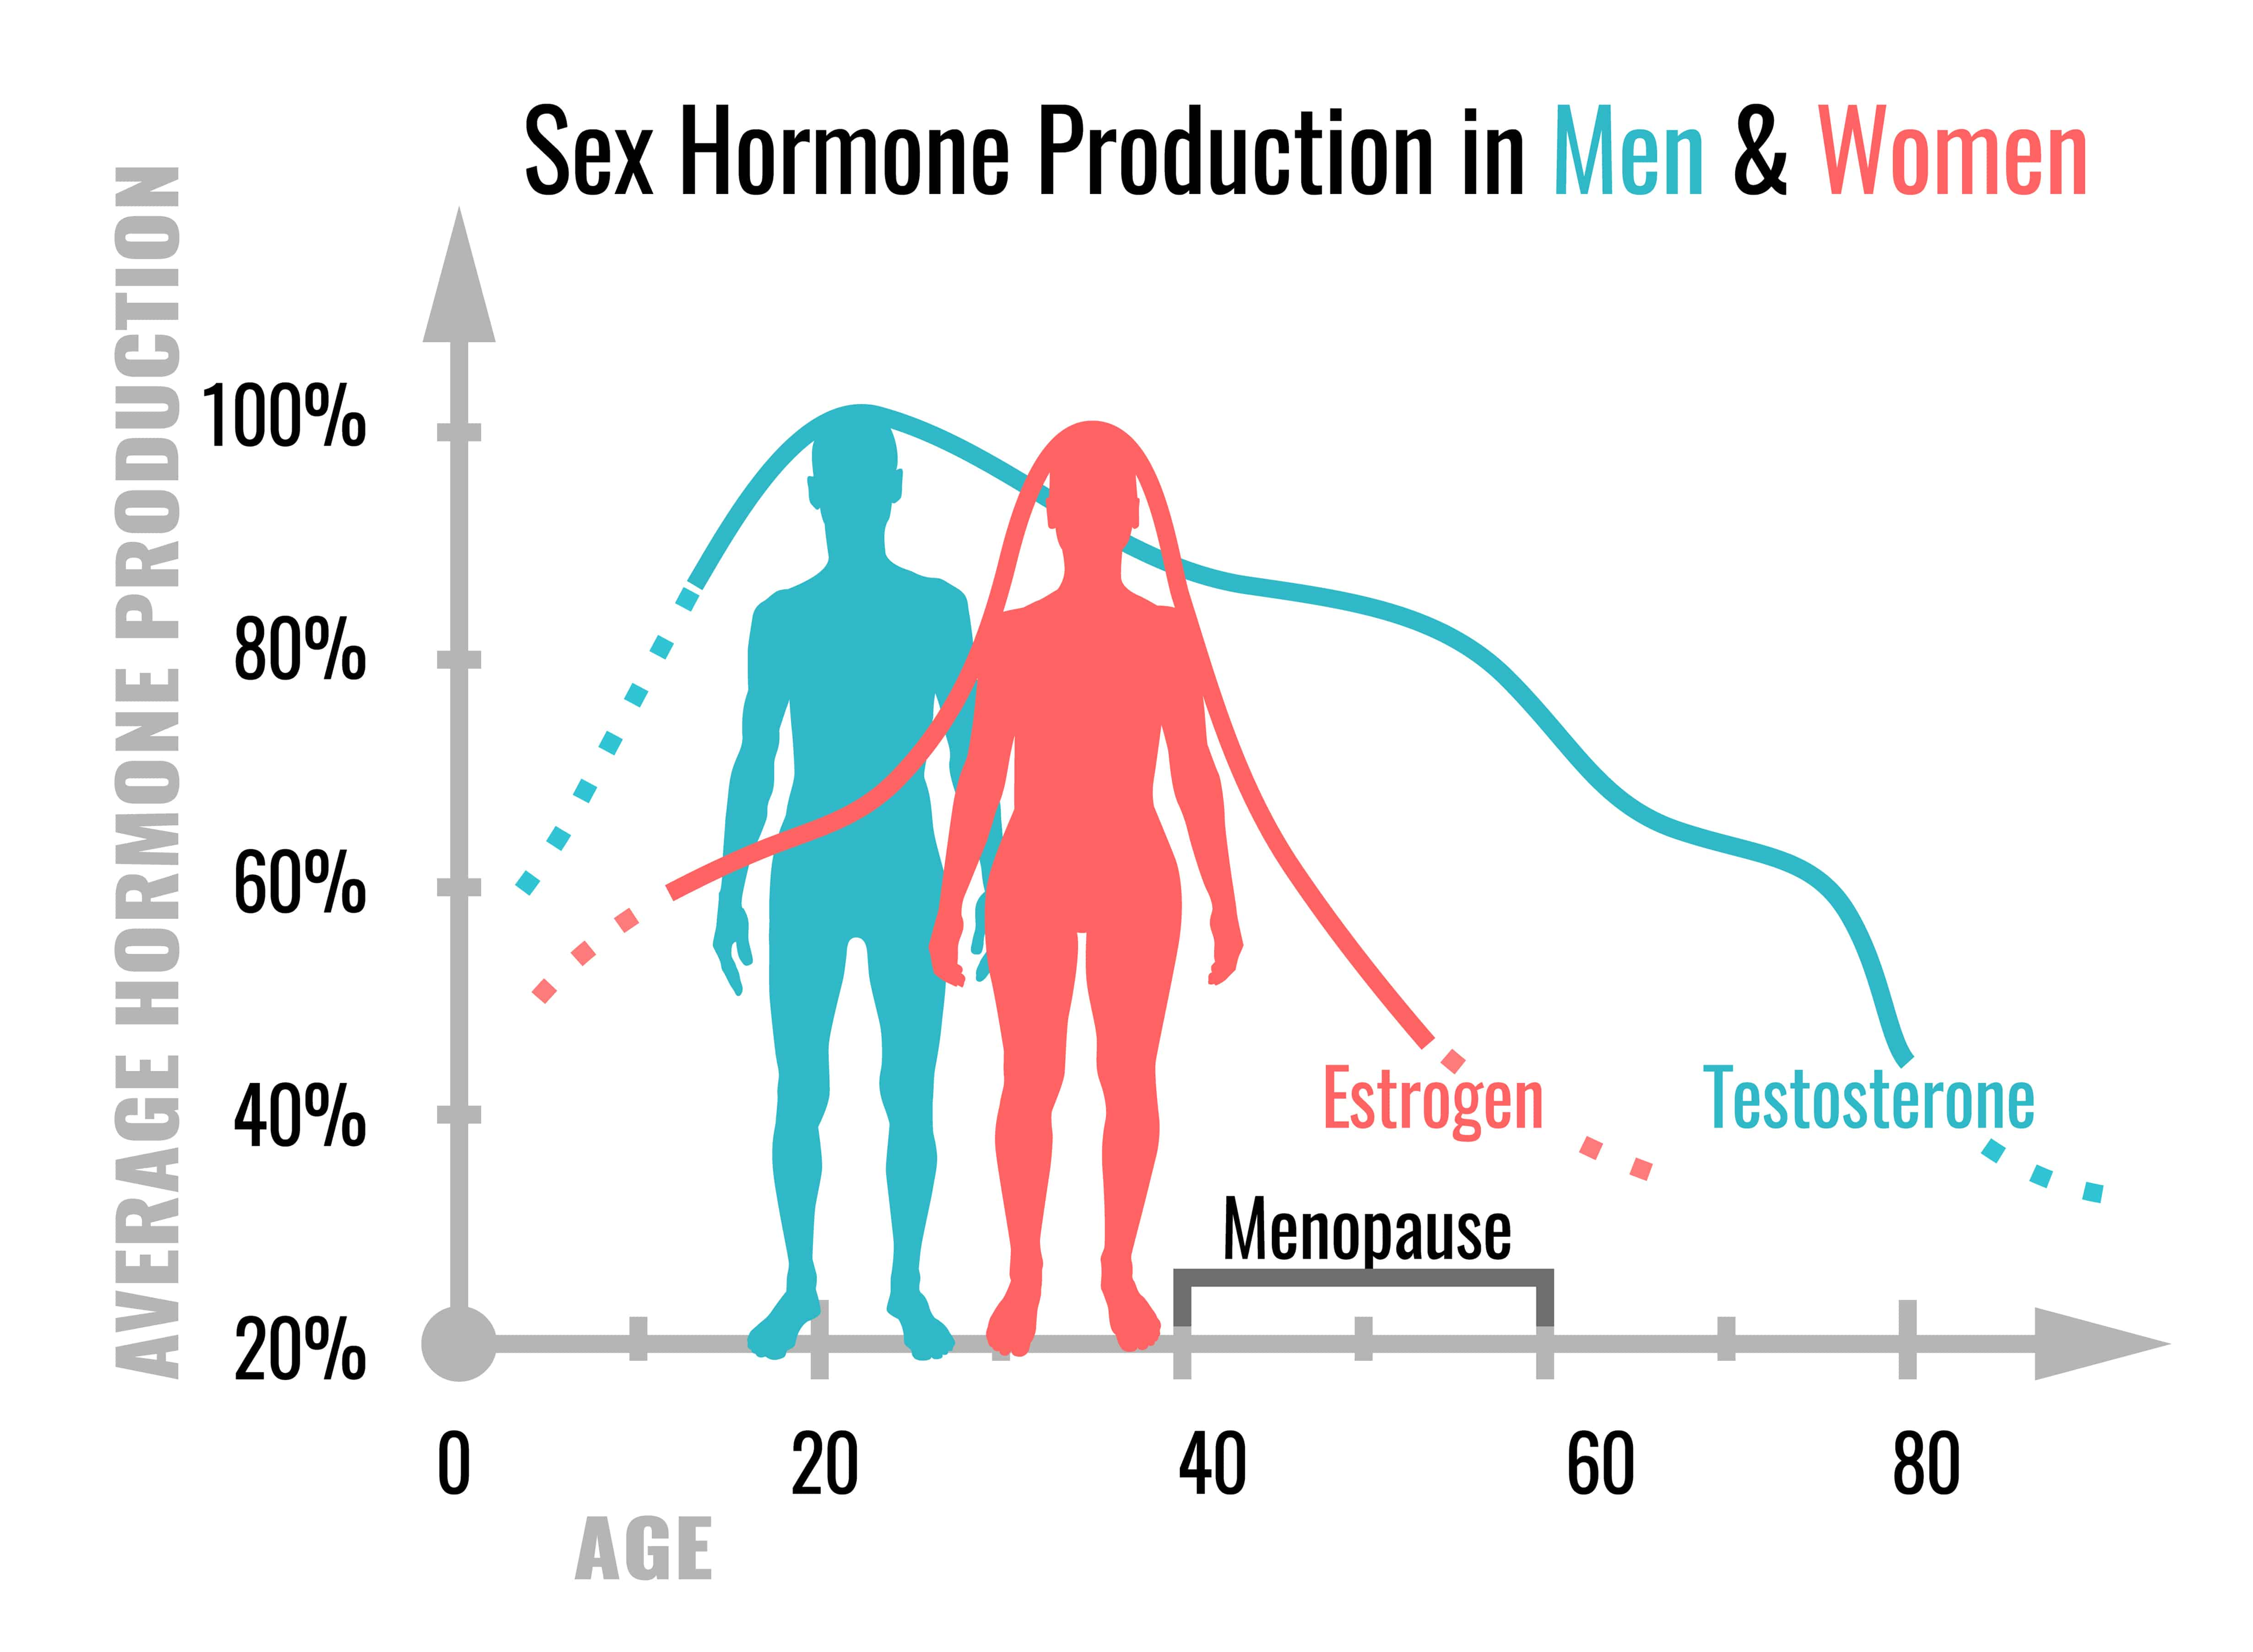 sex hormone production in men and women osteoporosis prevention propel physiotherapy